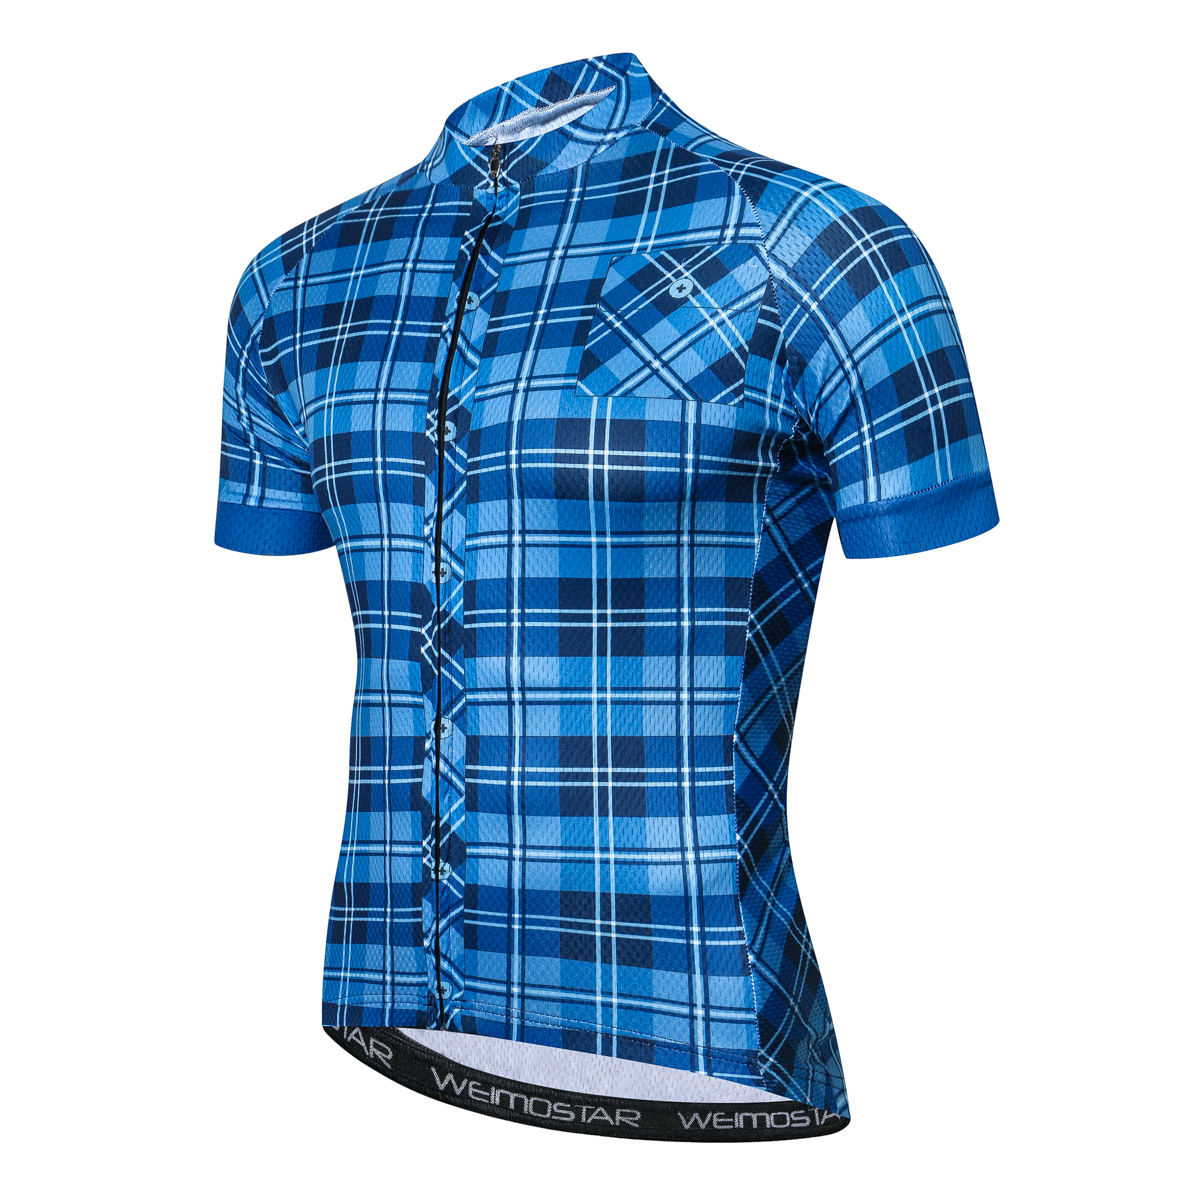 weimostar radtrikot bike bekleidung herren tops fahrrad shirt kurzarm xs 4xl ebay. Black Bedroom Furniture Sets. Home Design Ideas